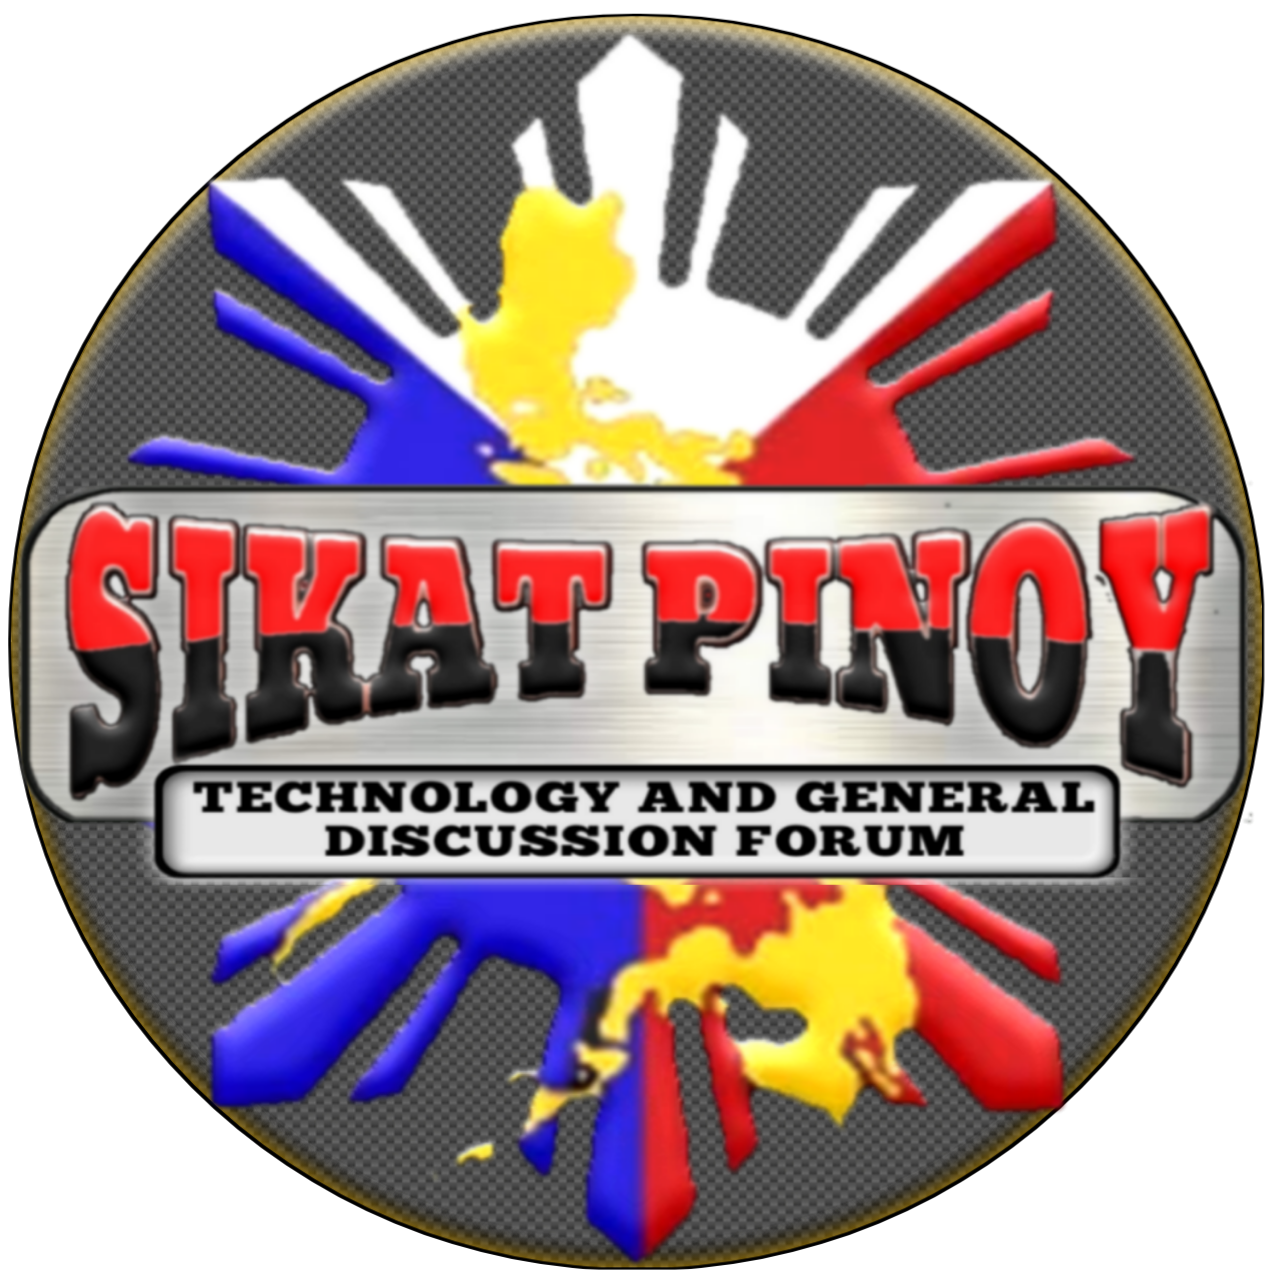 SIKATPINOY FORUM